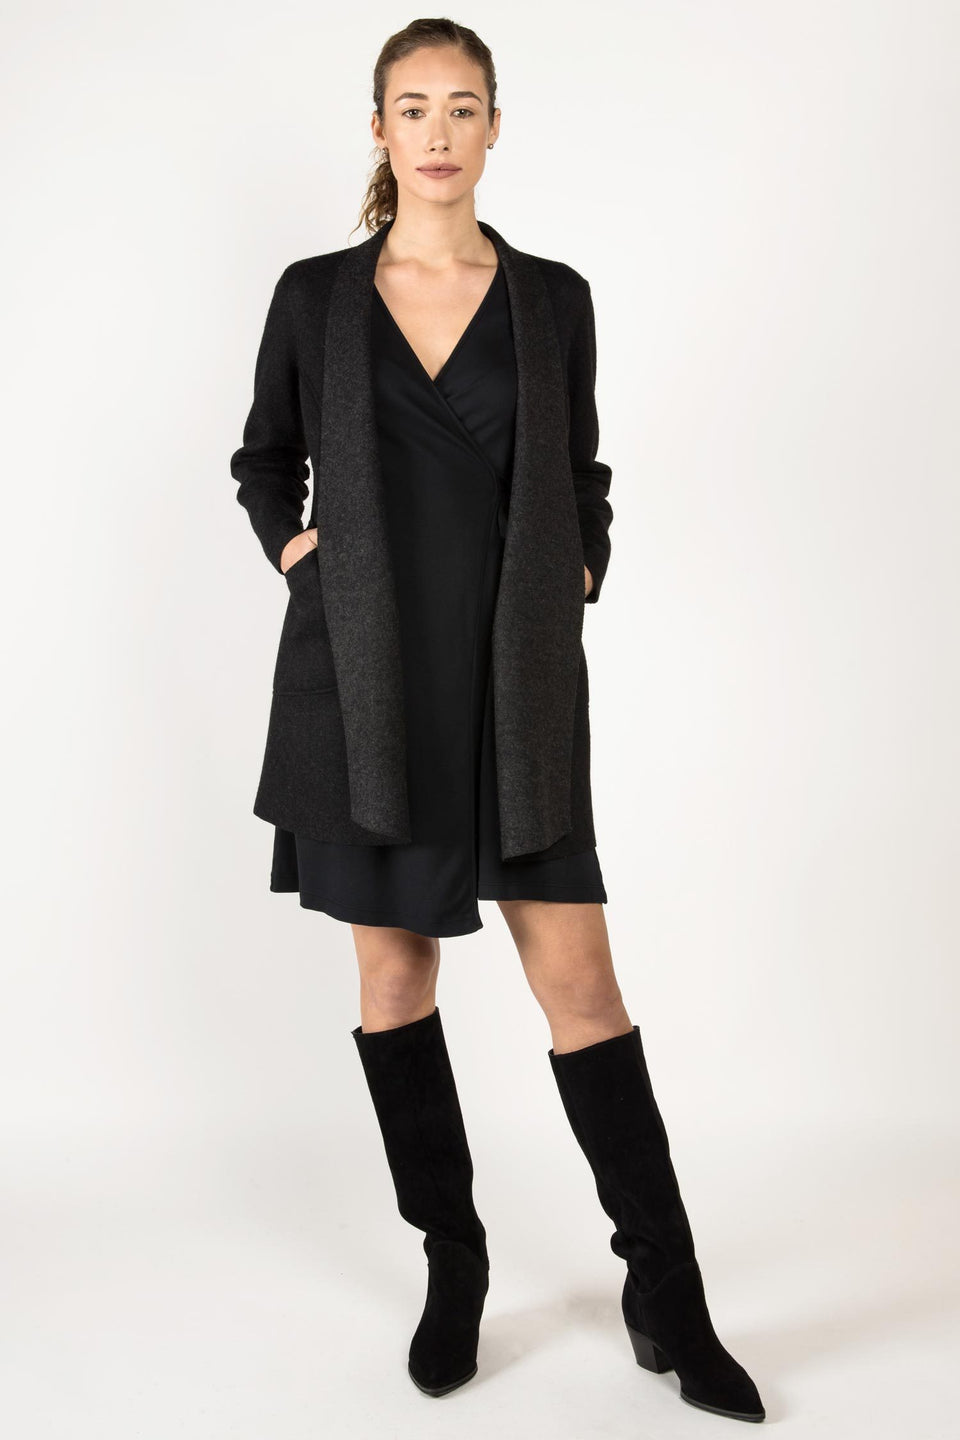 Alpaca Reversible Coat in Black Charcoal